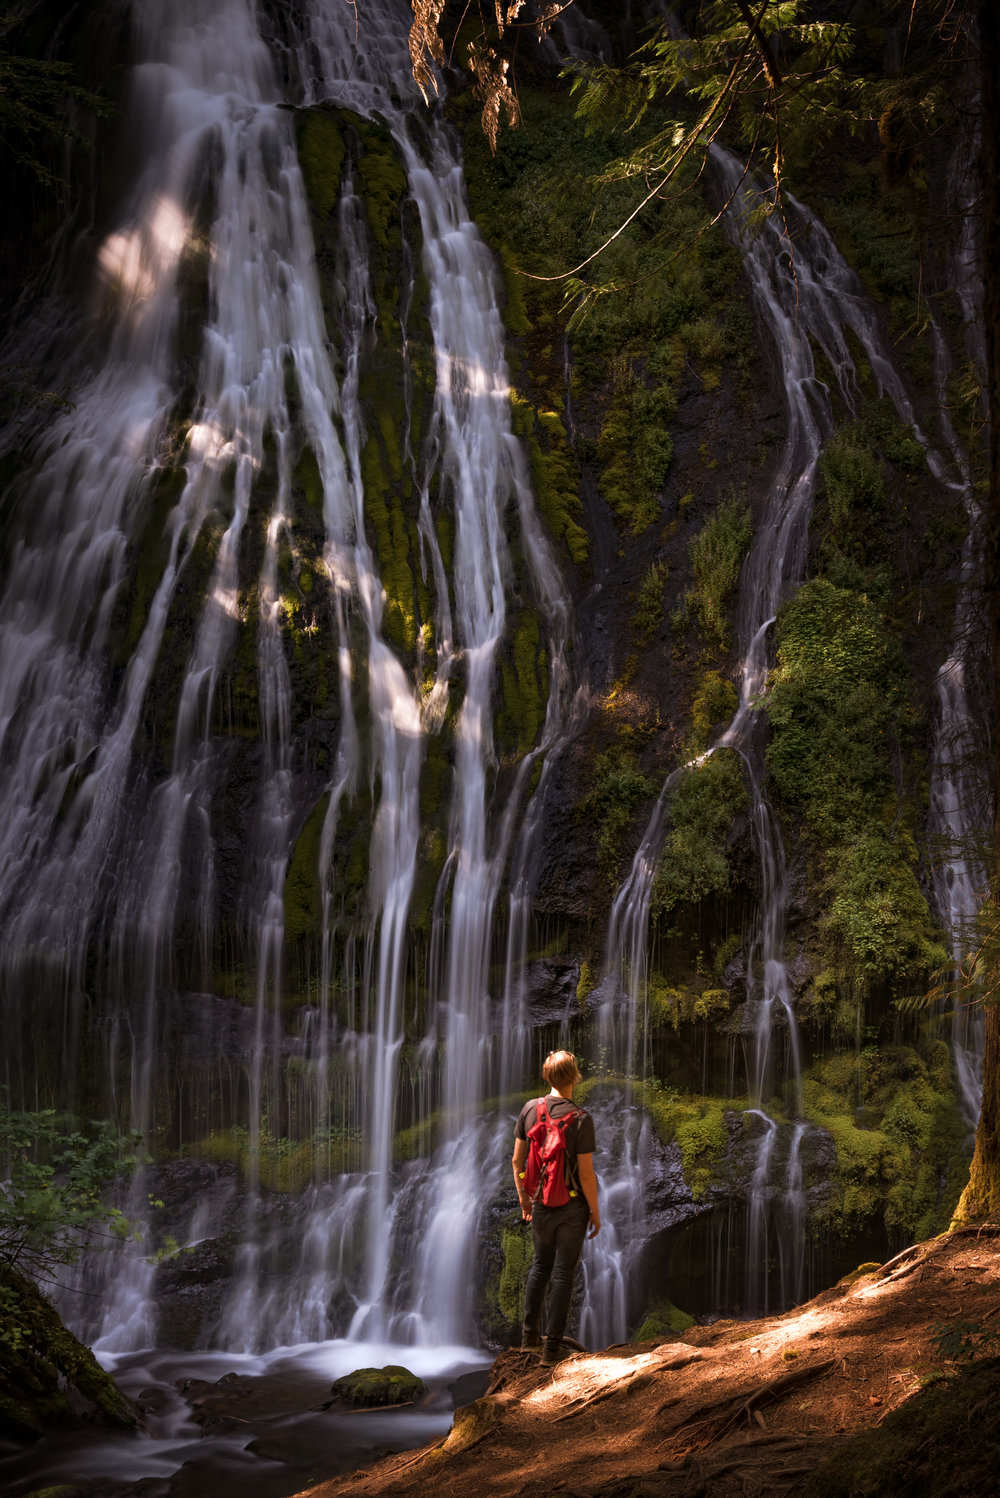 Teague standing in front of Panther Creek Falls.